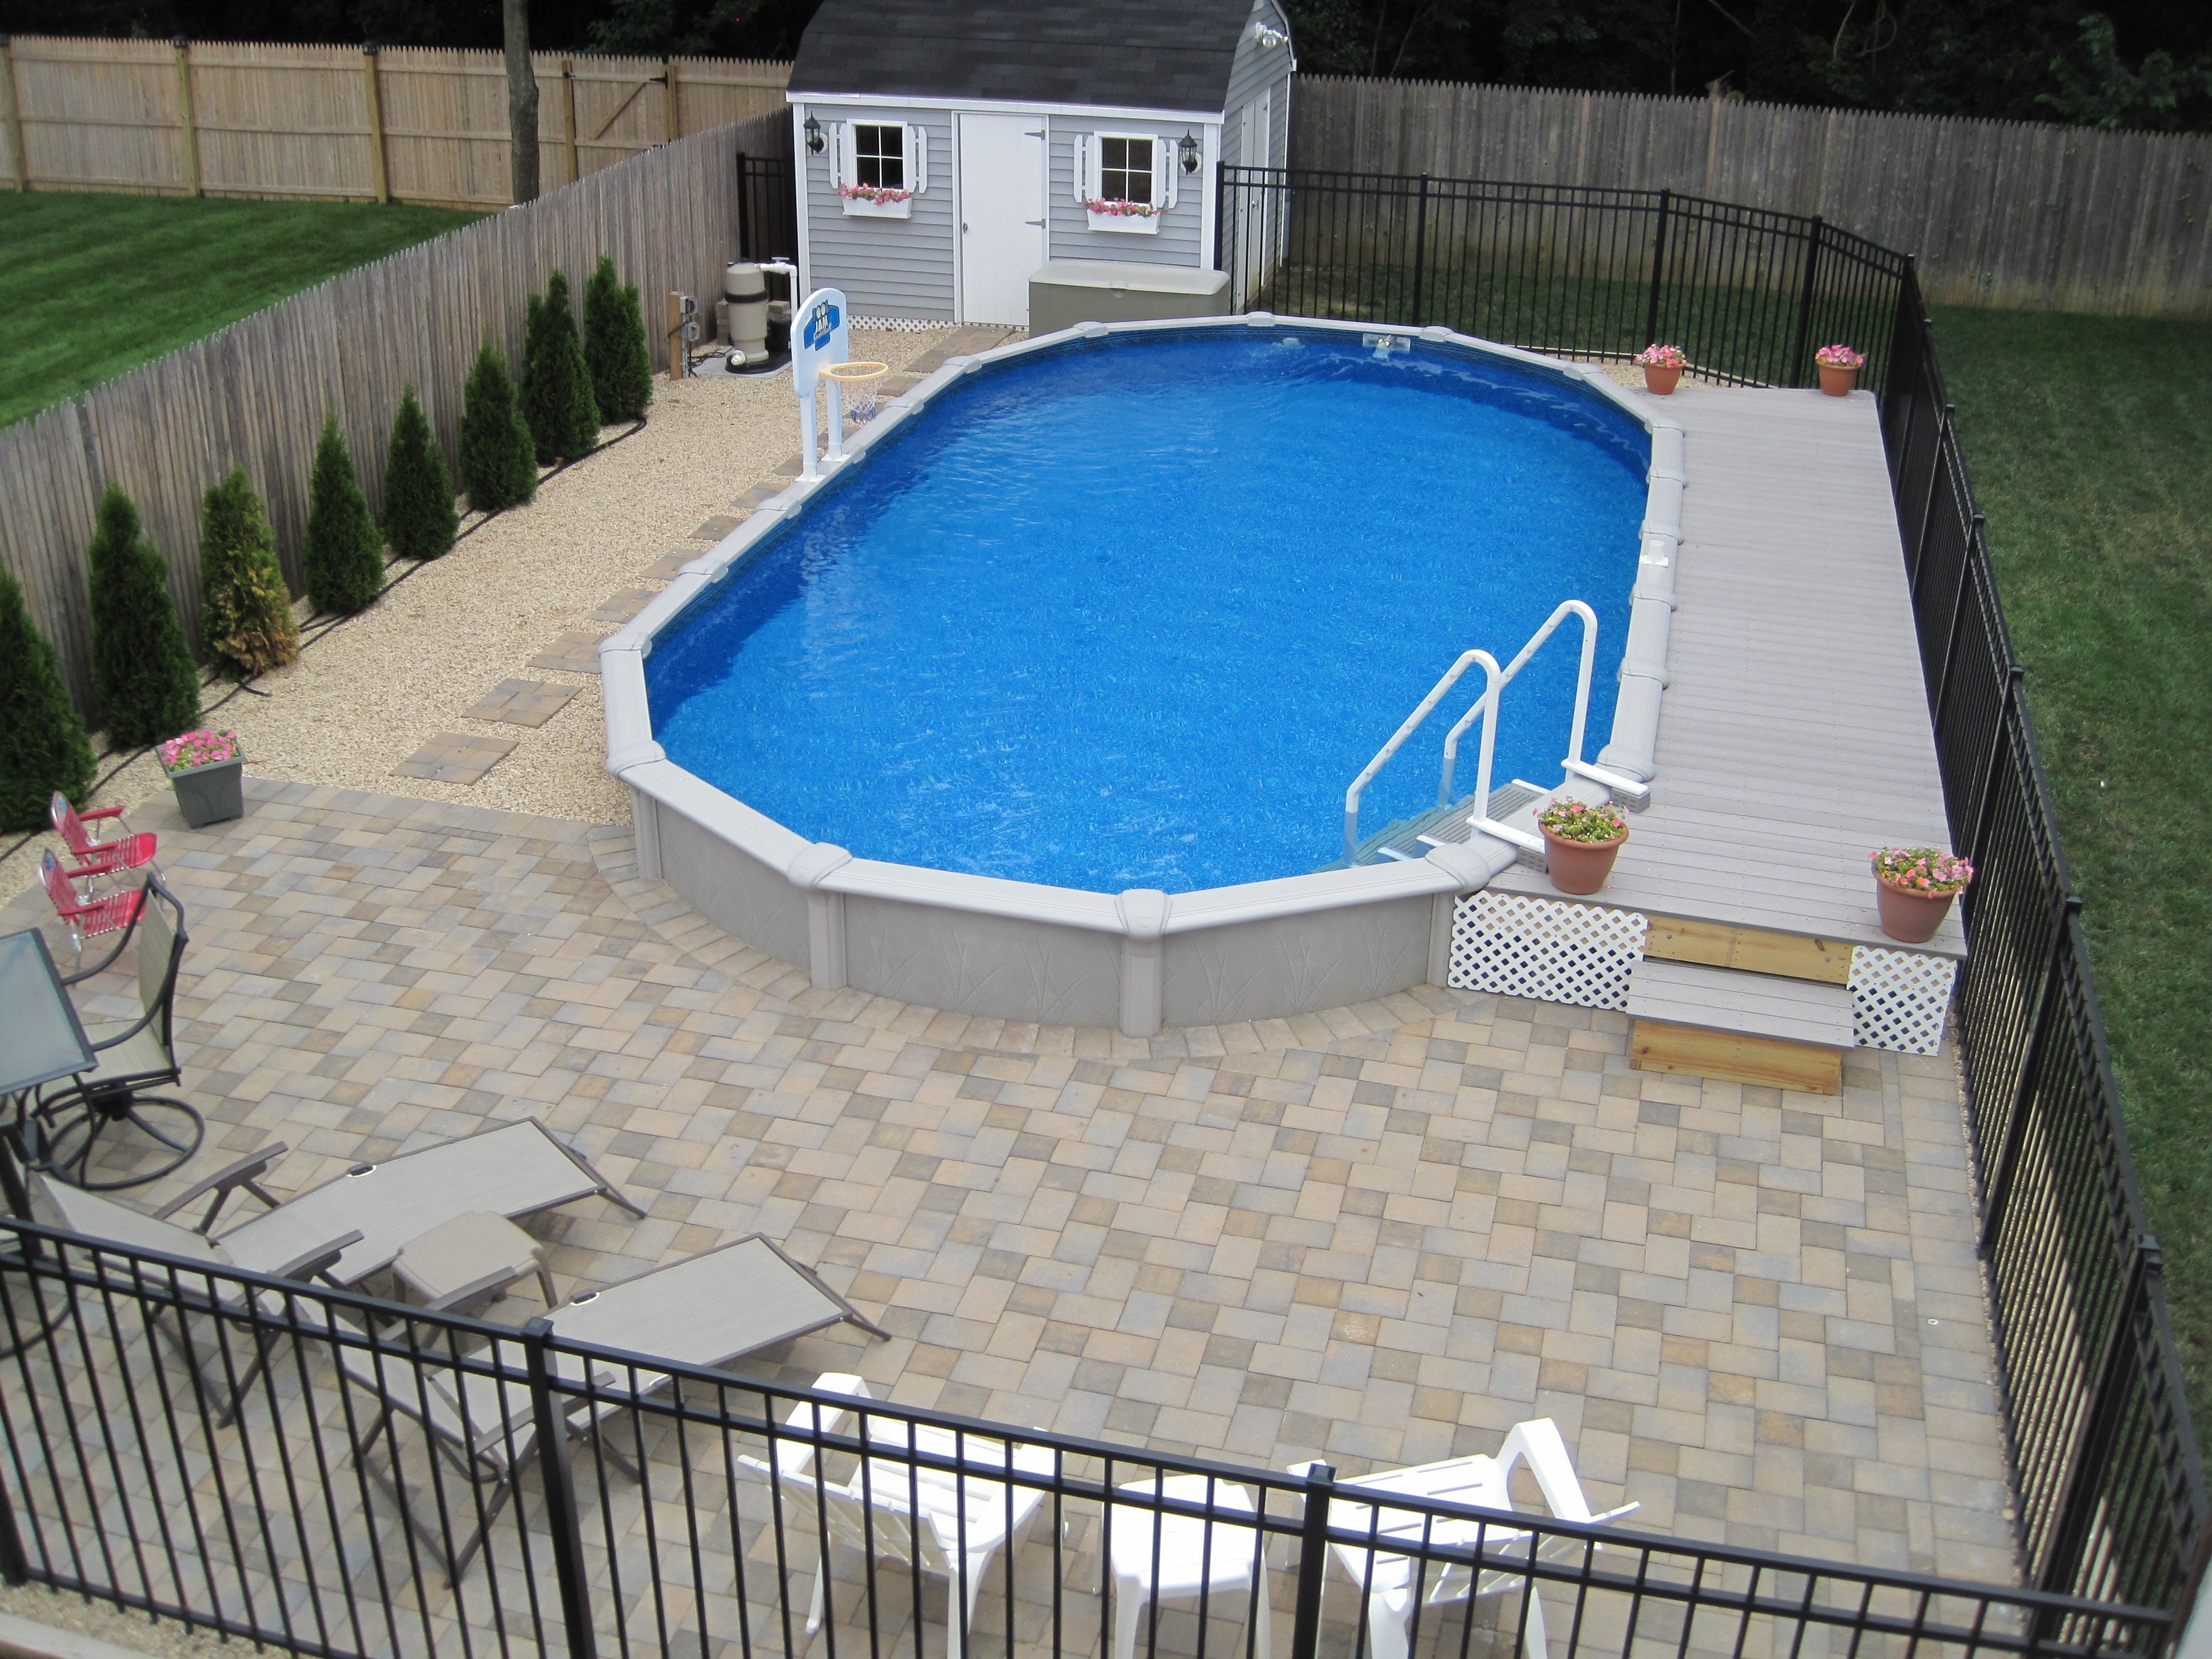 Best ideas about Semi Inground Pool With Deck . Save or Pin 15x30 Sharkline semi inground pool with deck and pavers Now.